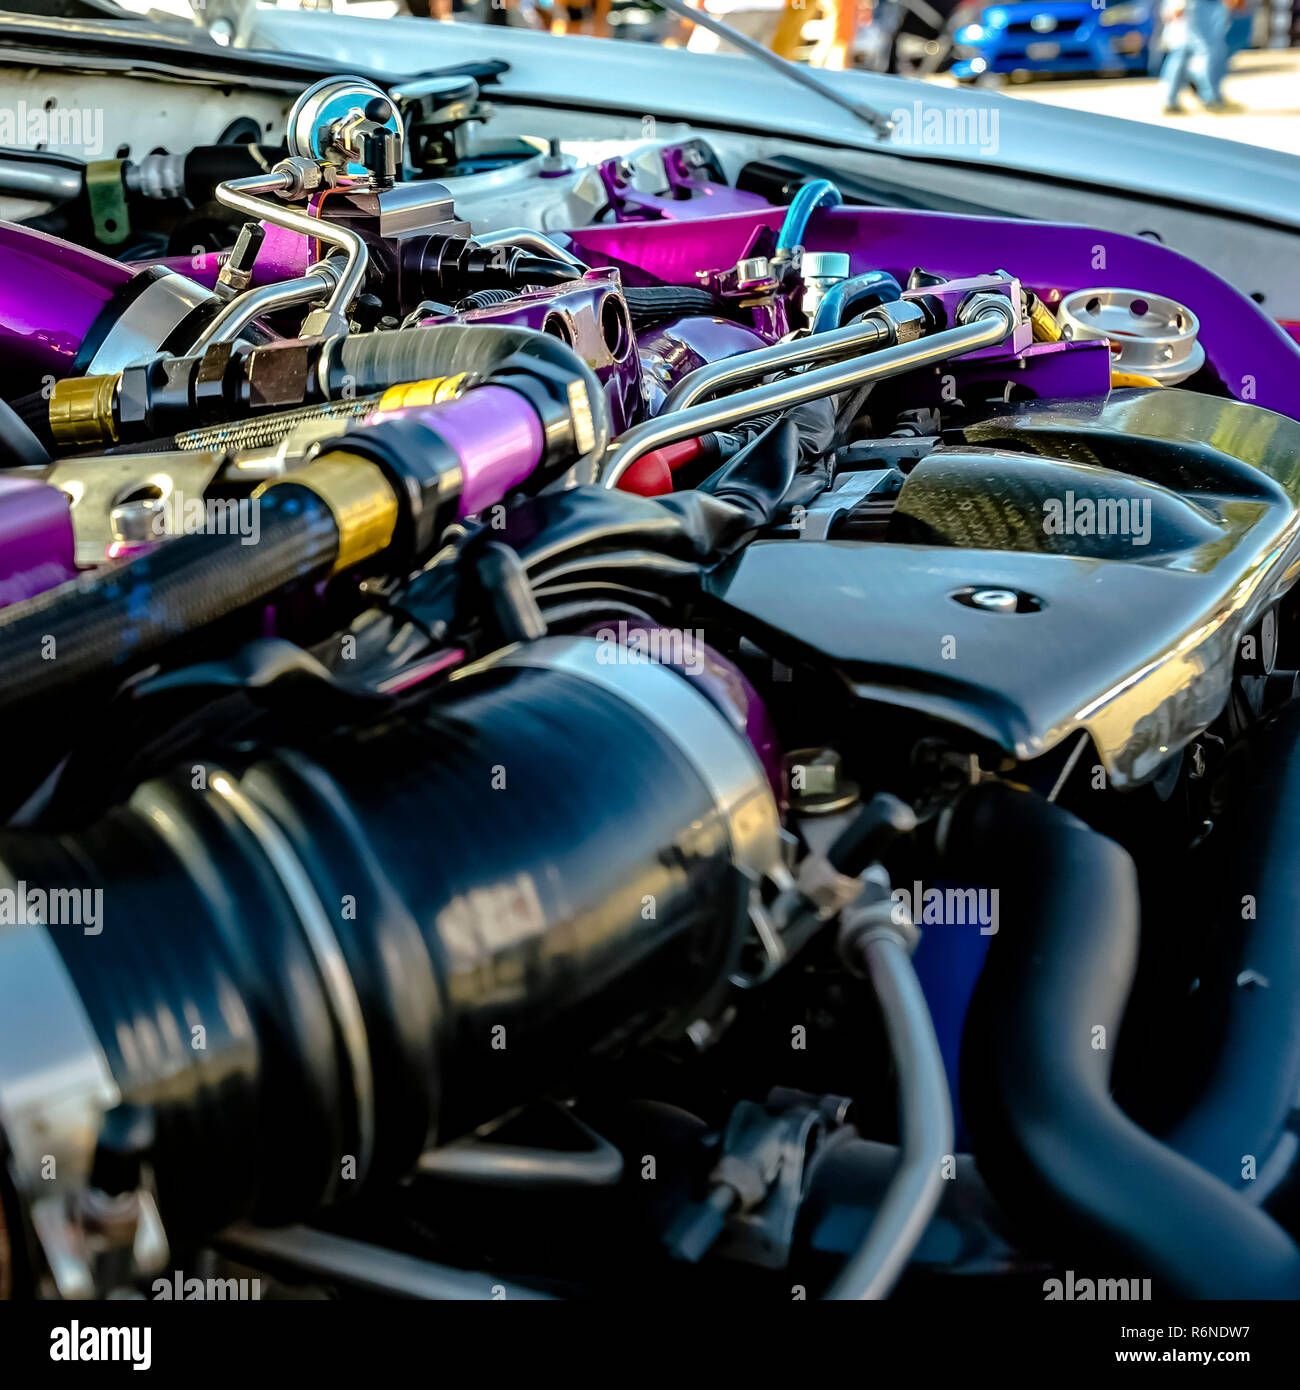 Engine Components Stock Photos & Engine Components Stock